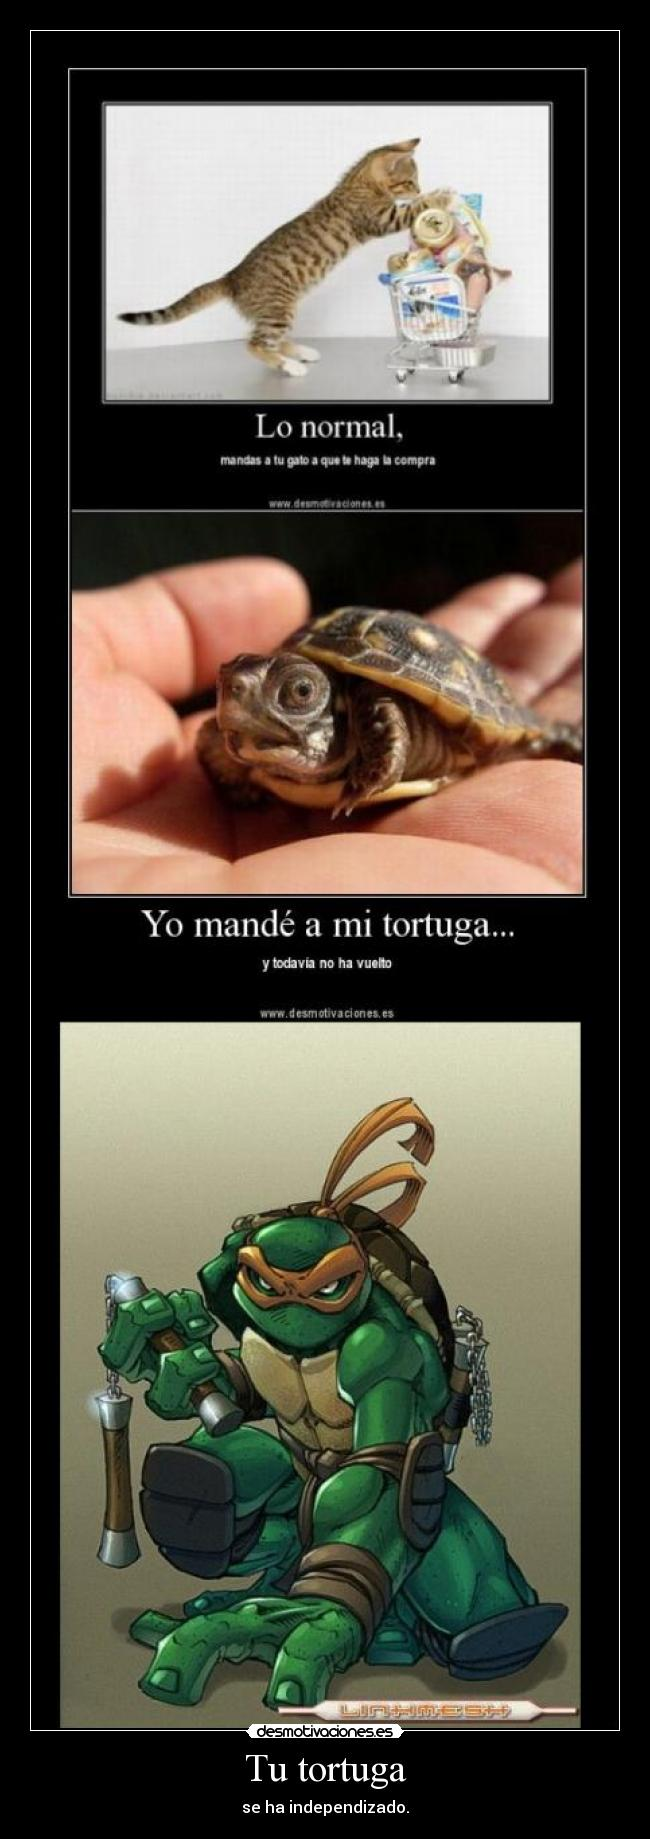 Tu tortuga - se ha independizado.